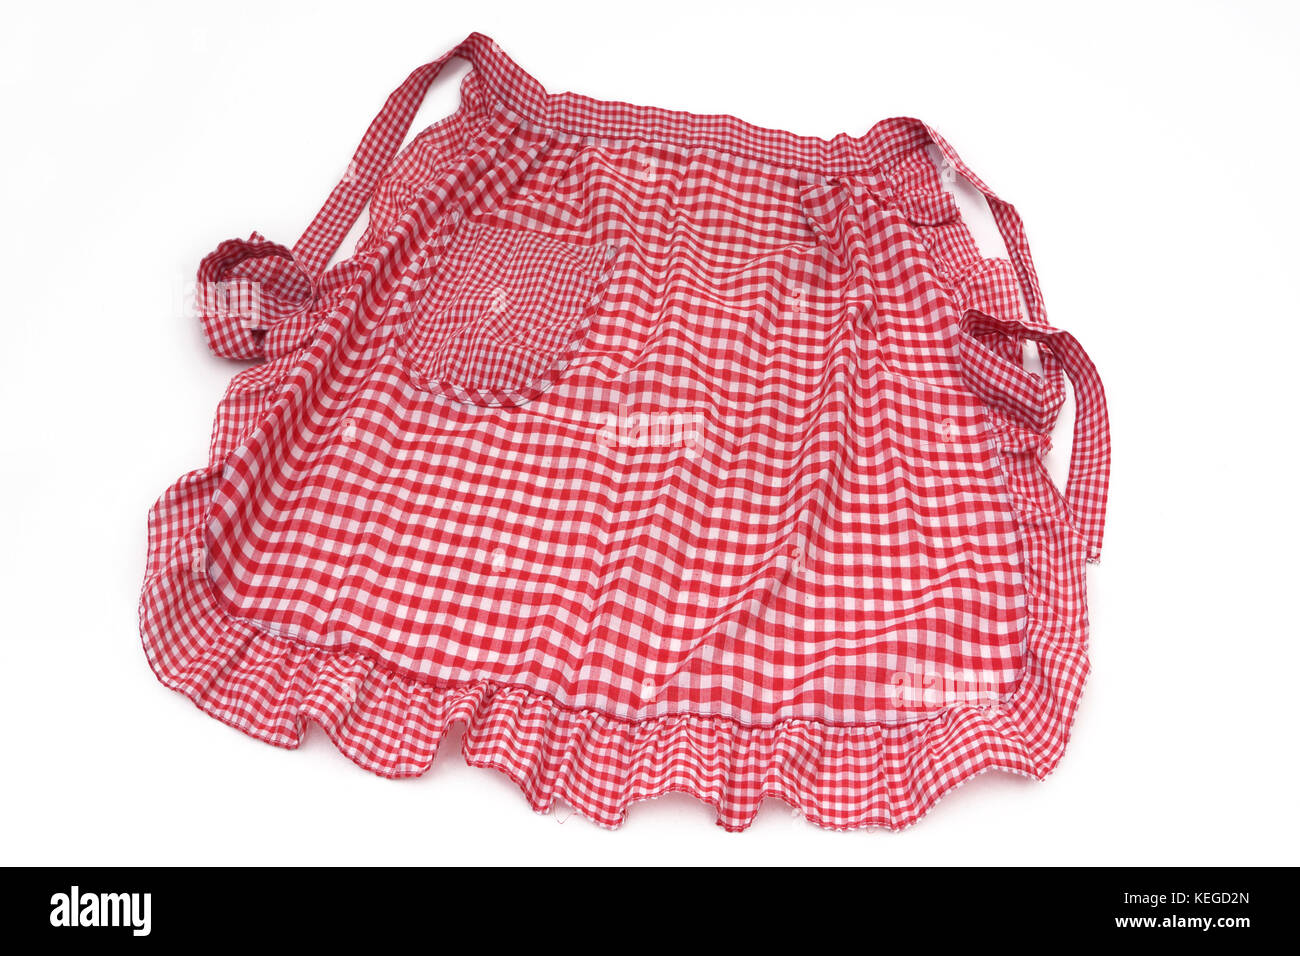 Red and White Checkered Apron - Stock Image